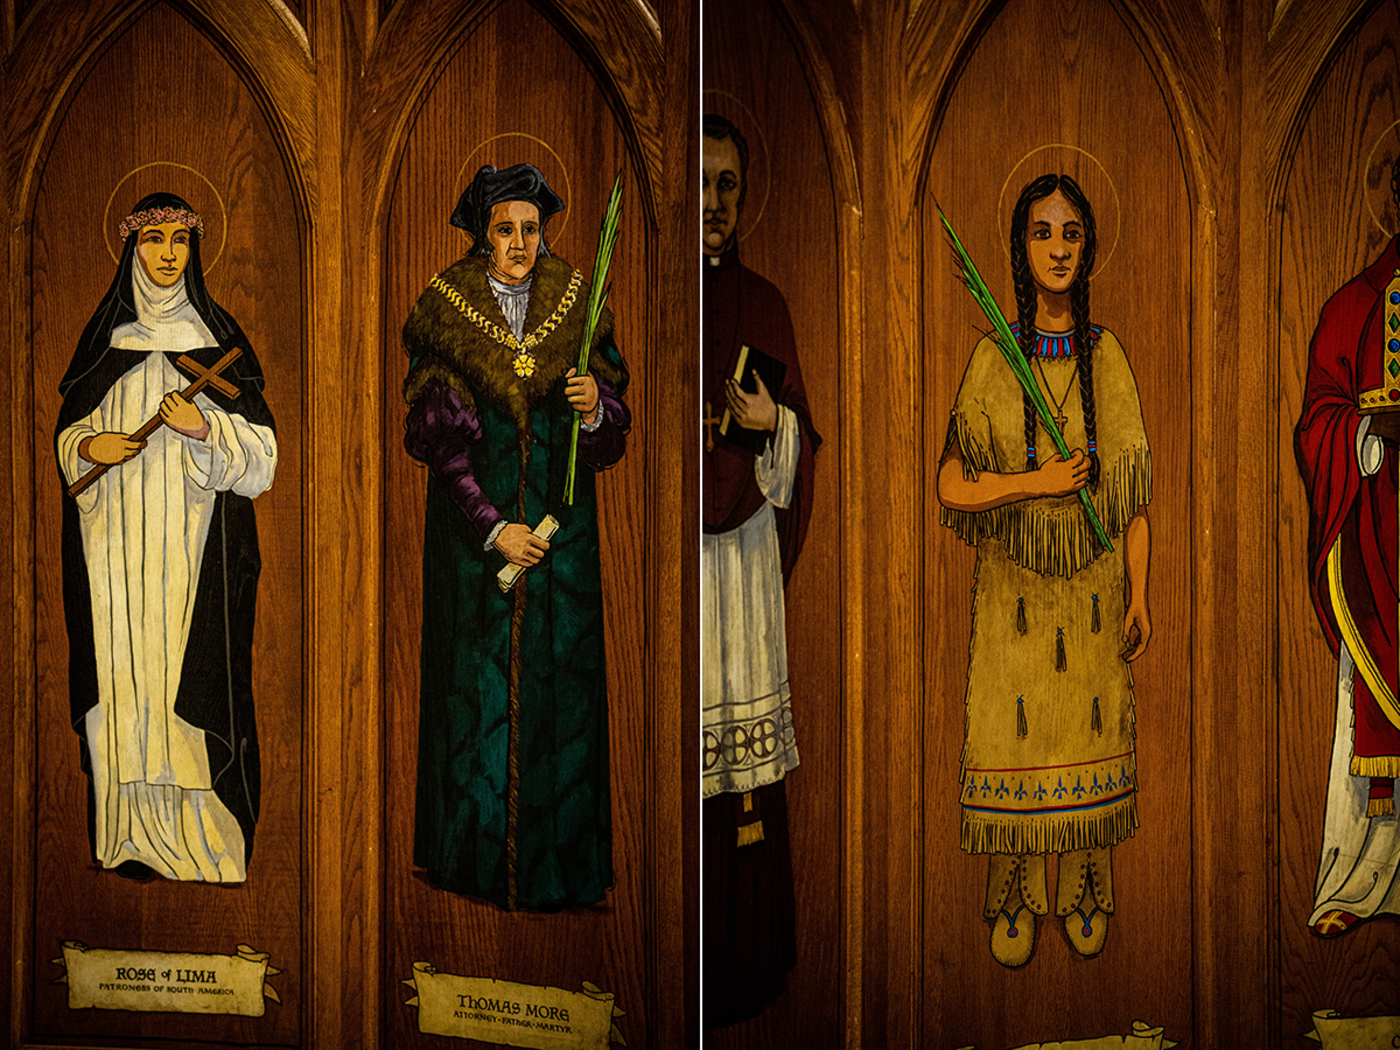 saints painted on the walls around baptismal font at St. Augustine church in Brooklyn, NY